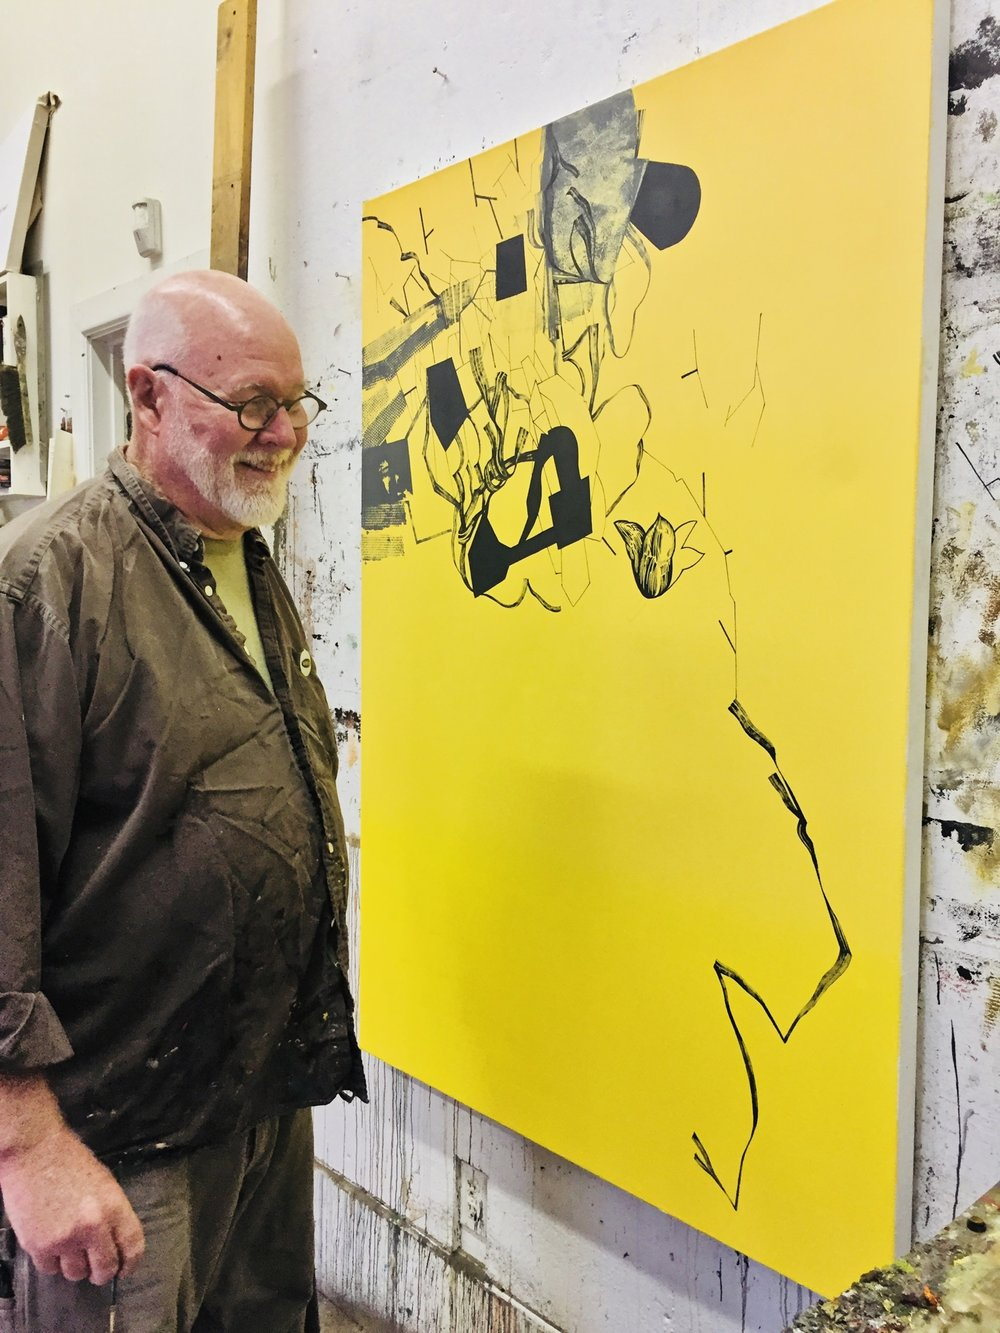 Artist David Frazer in his painting studio Photo by Barbra Revill